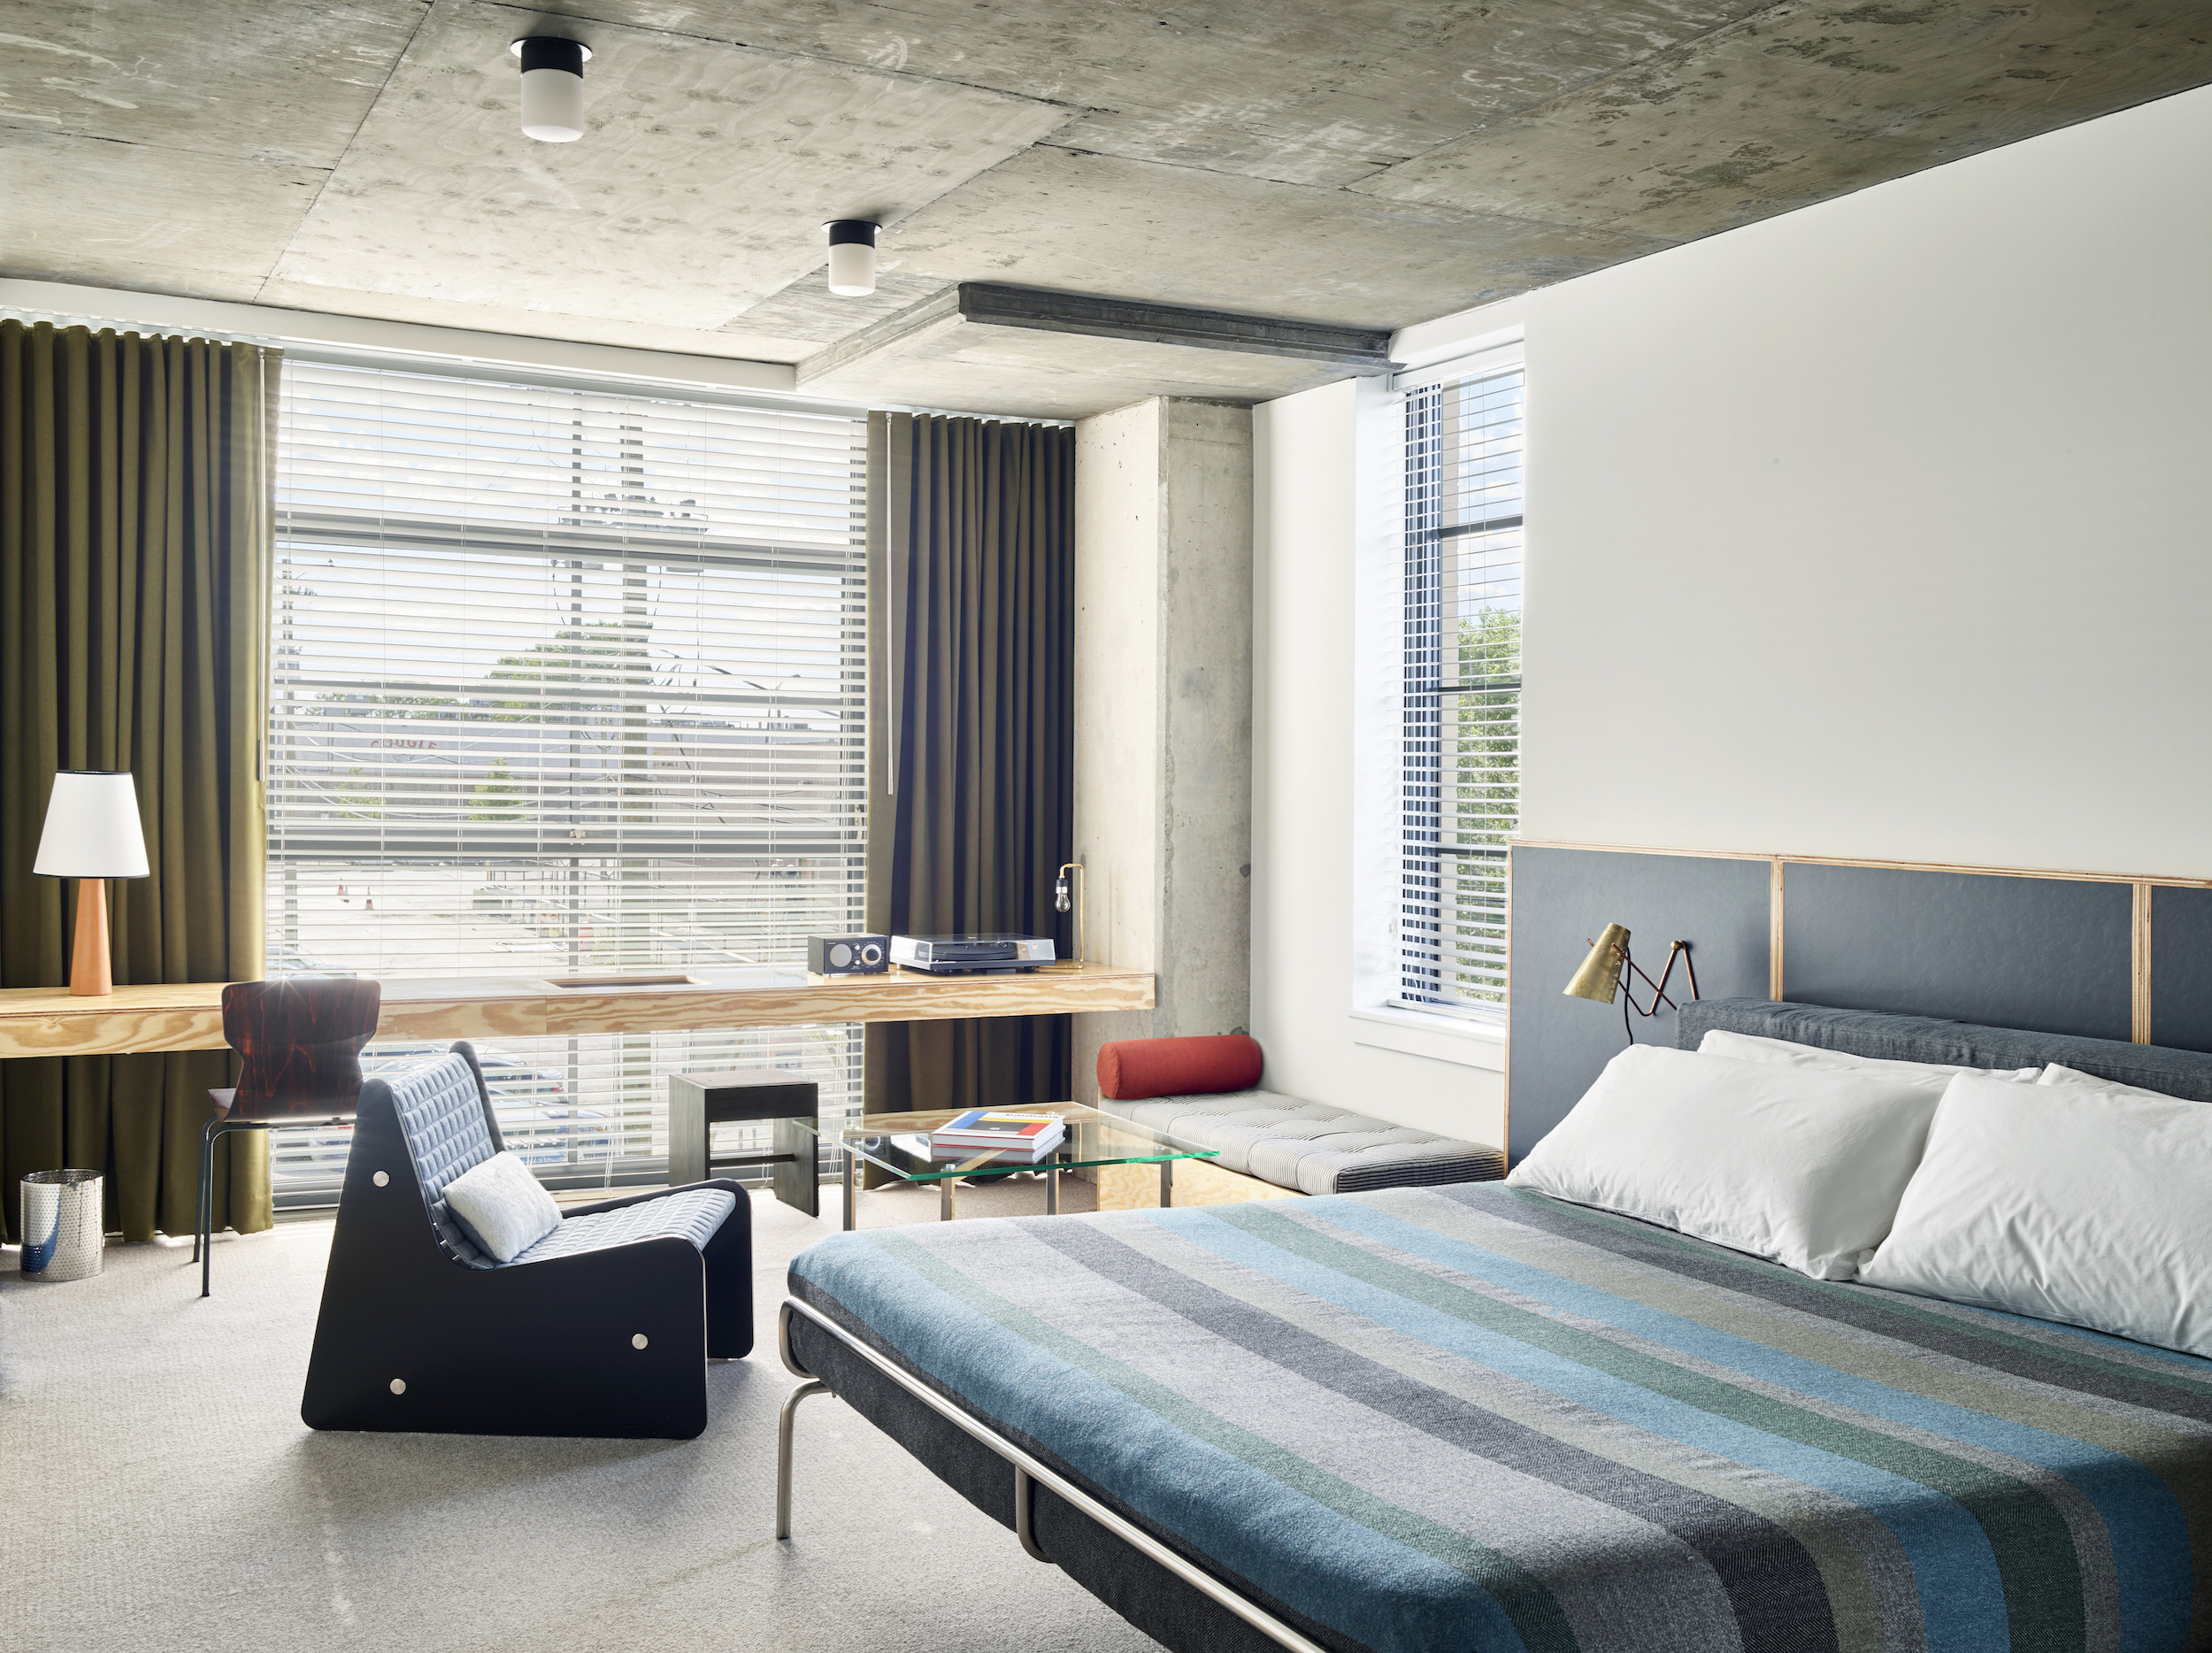 chicago hotels - curbed chicago